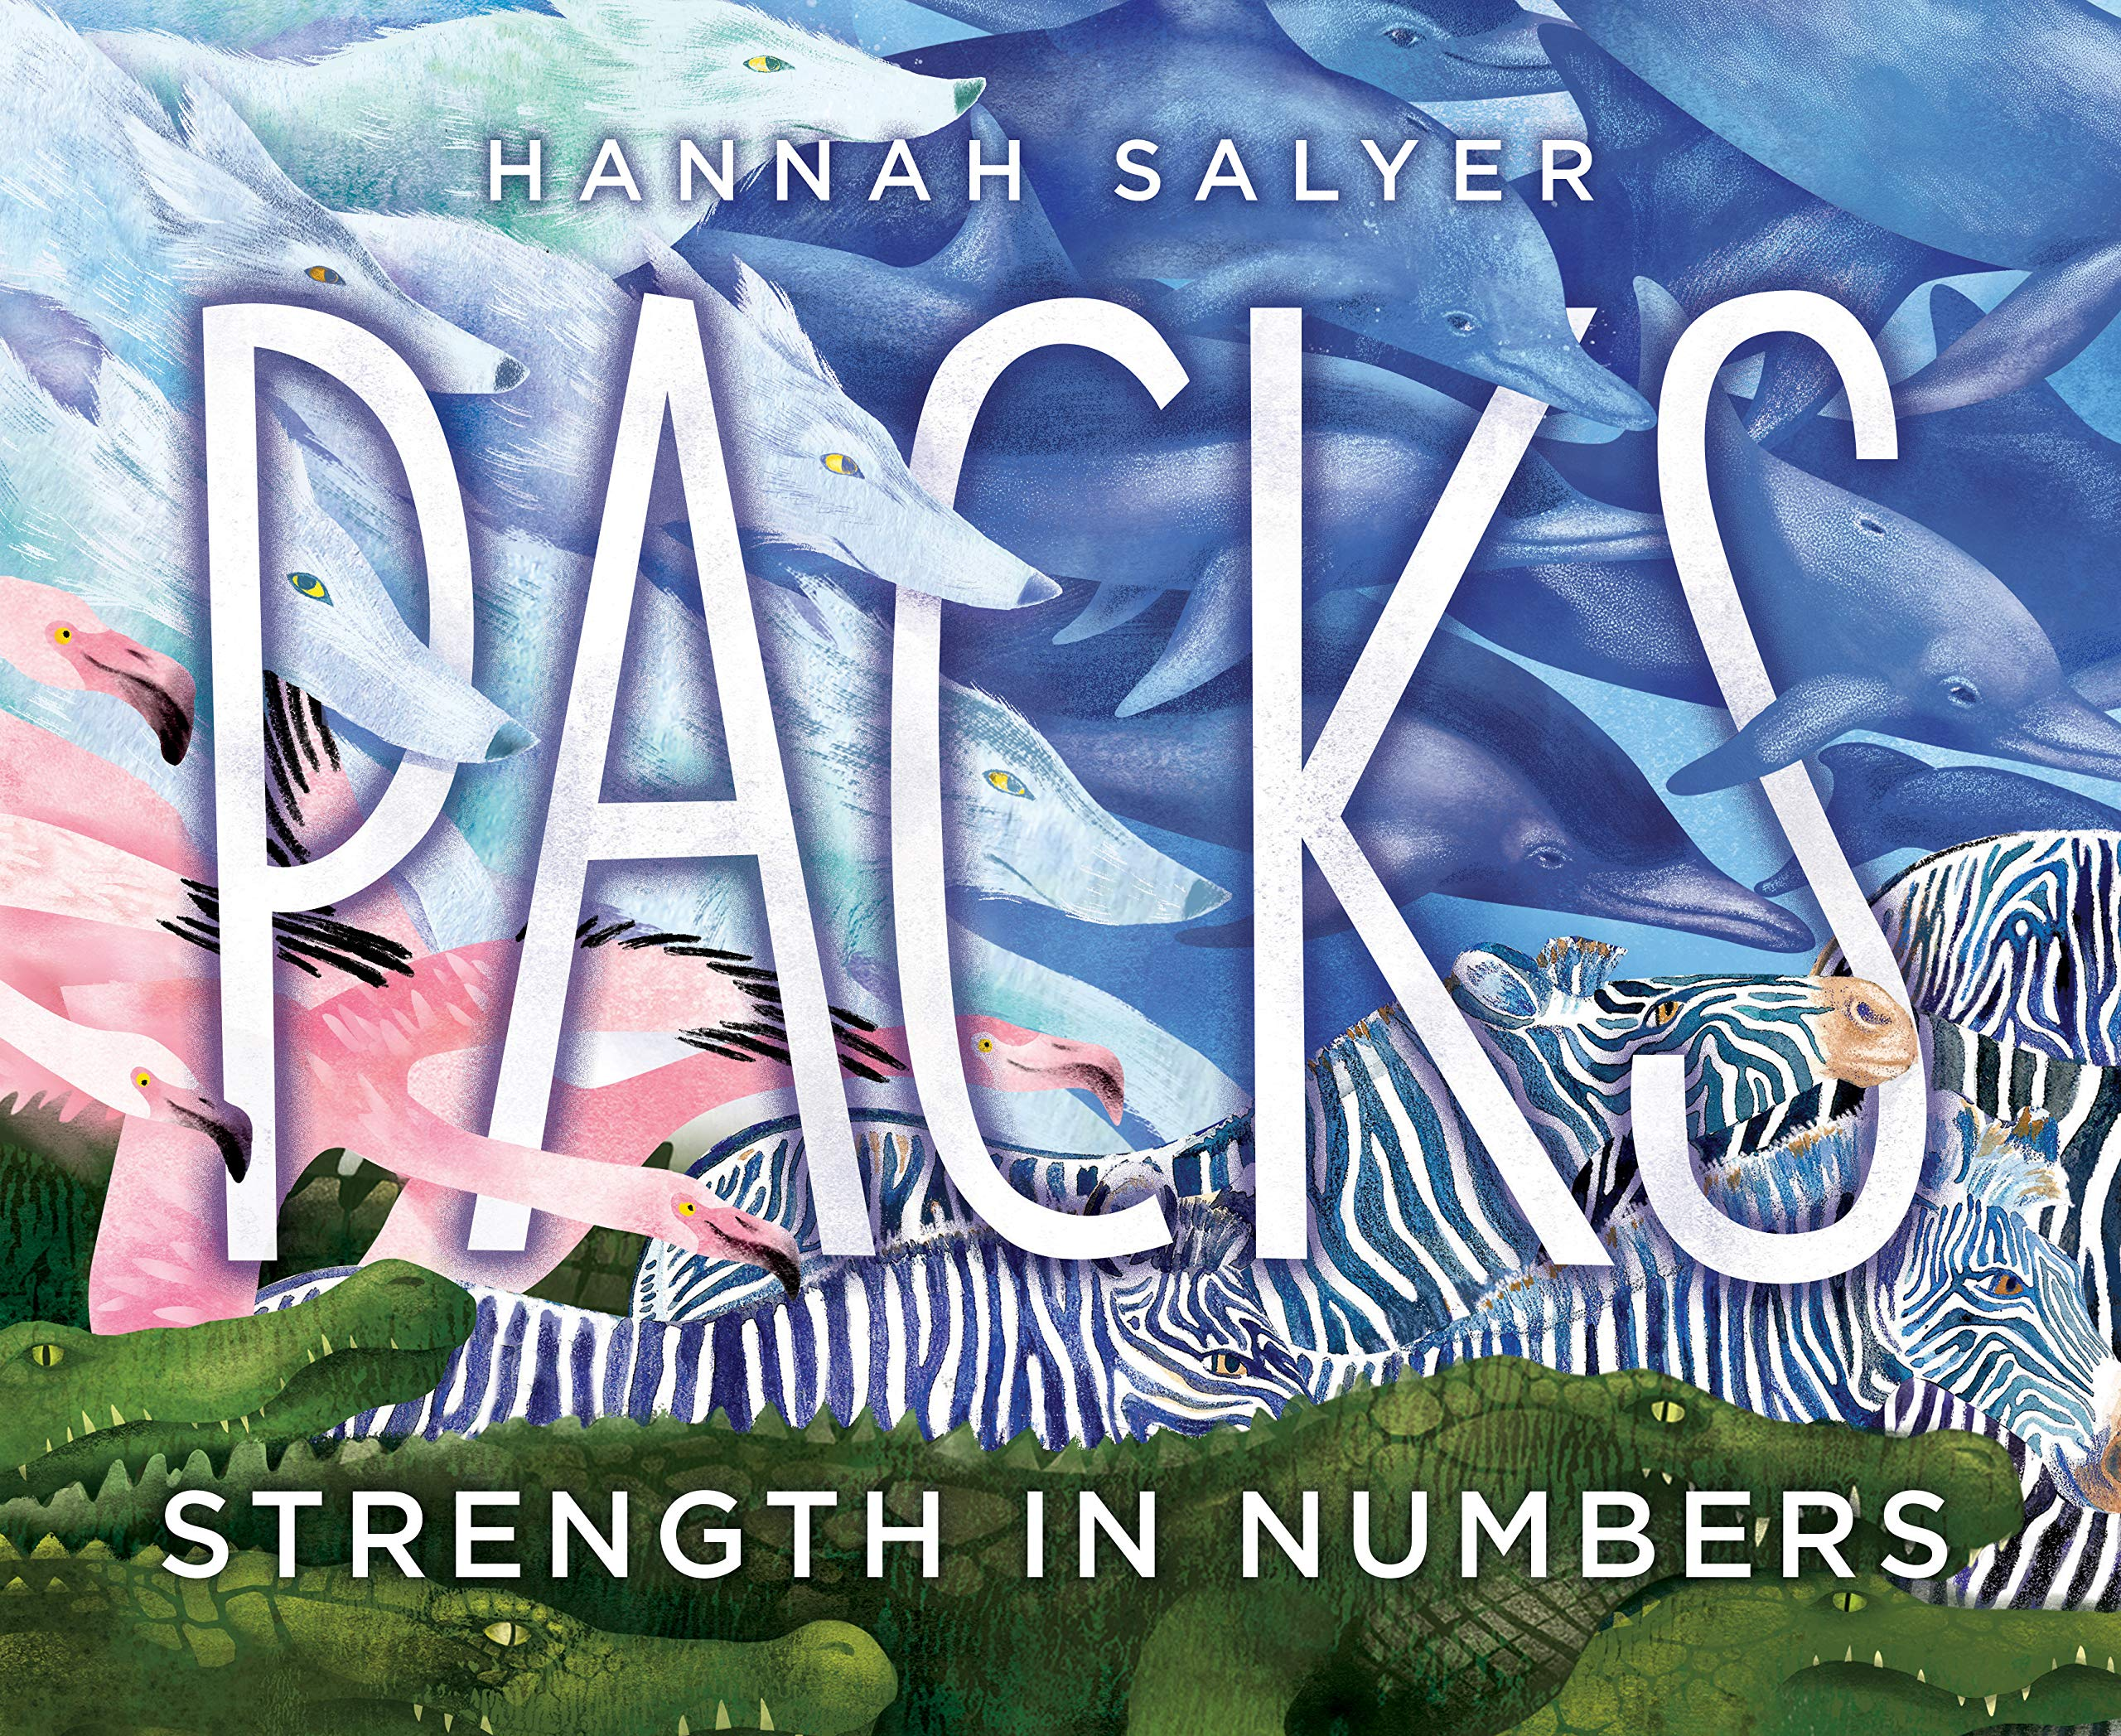 Packs: Strength in Numbers: Salyer, Hannah: 9781328577887: Amazon.com: Books